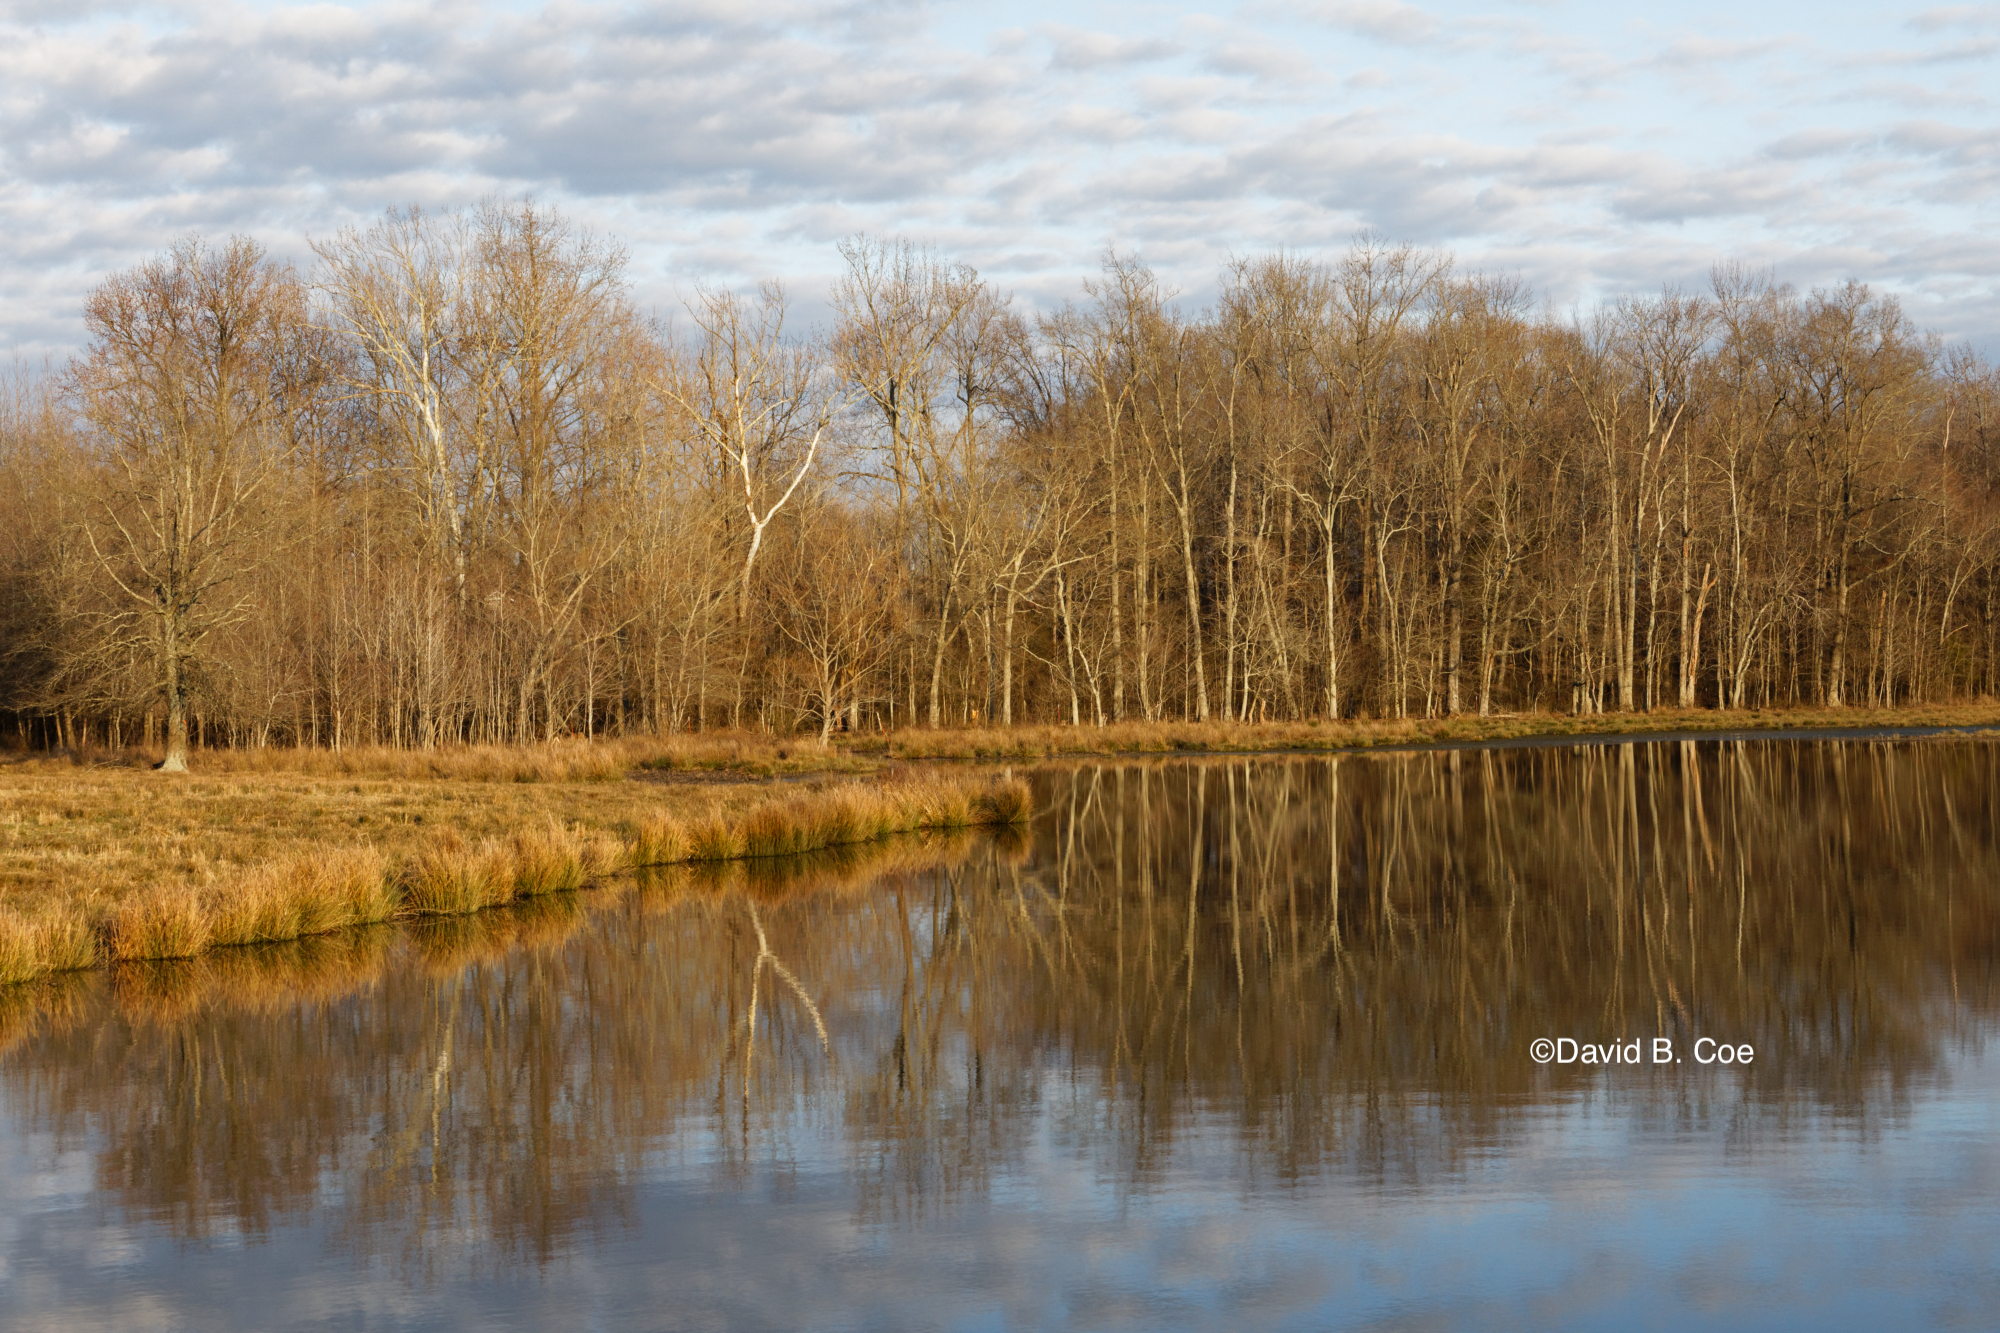 Farm Pond Reflection, by David B. Coe